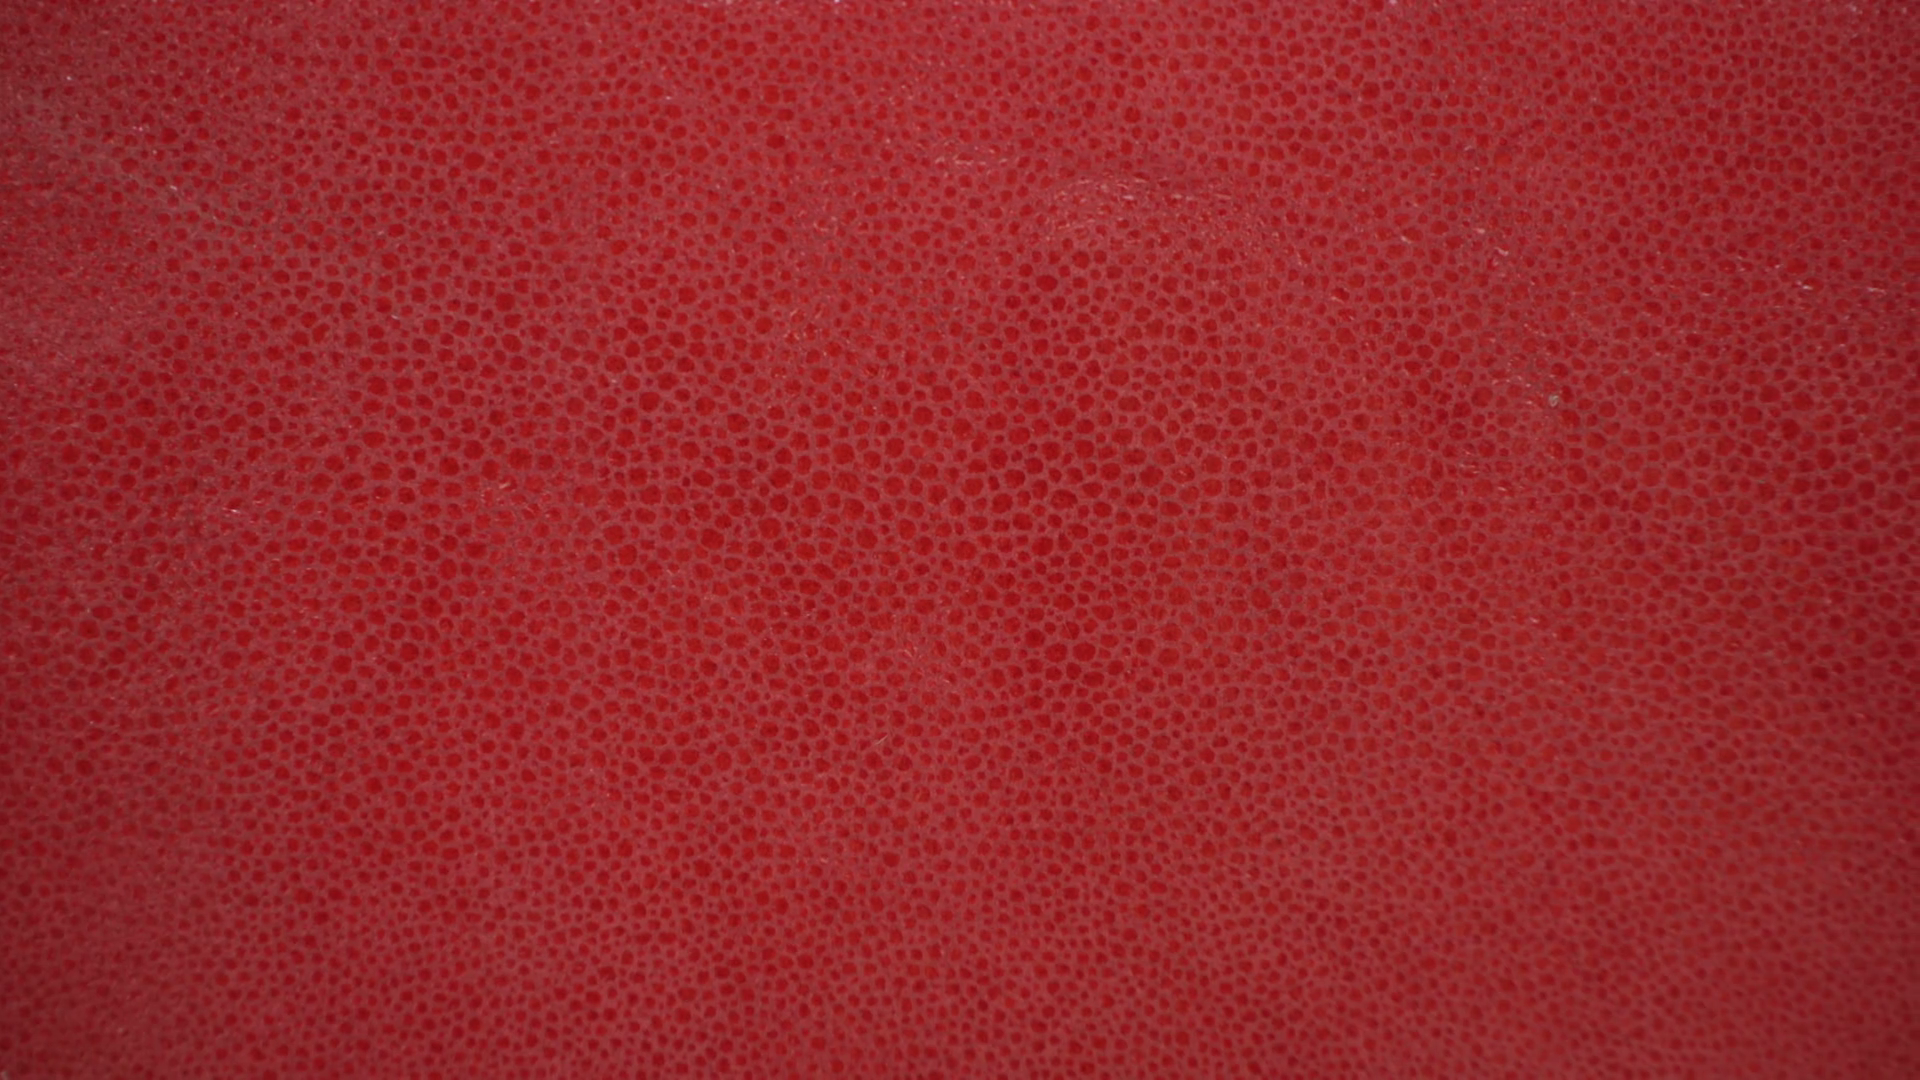 Image Result For Red Skin Texture Skin Textures Red Skin Texture